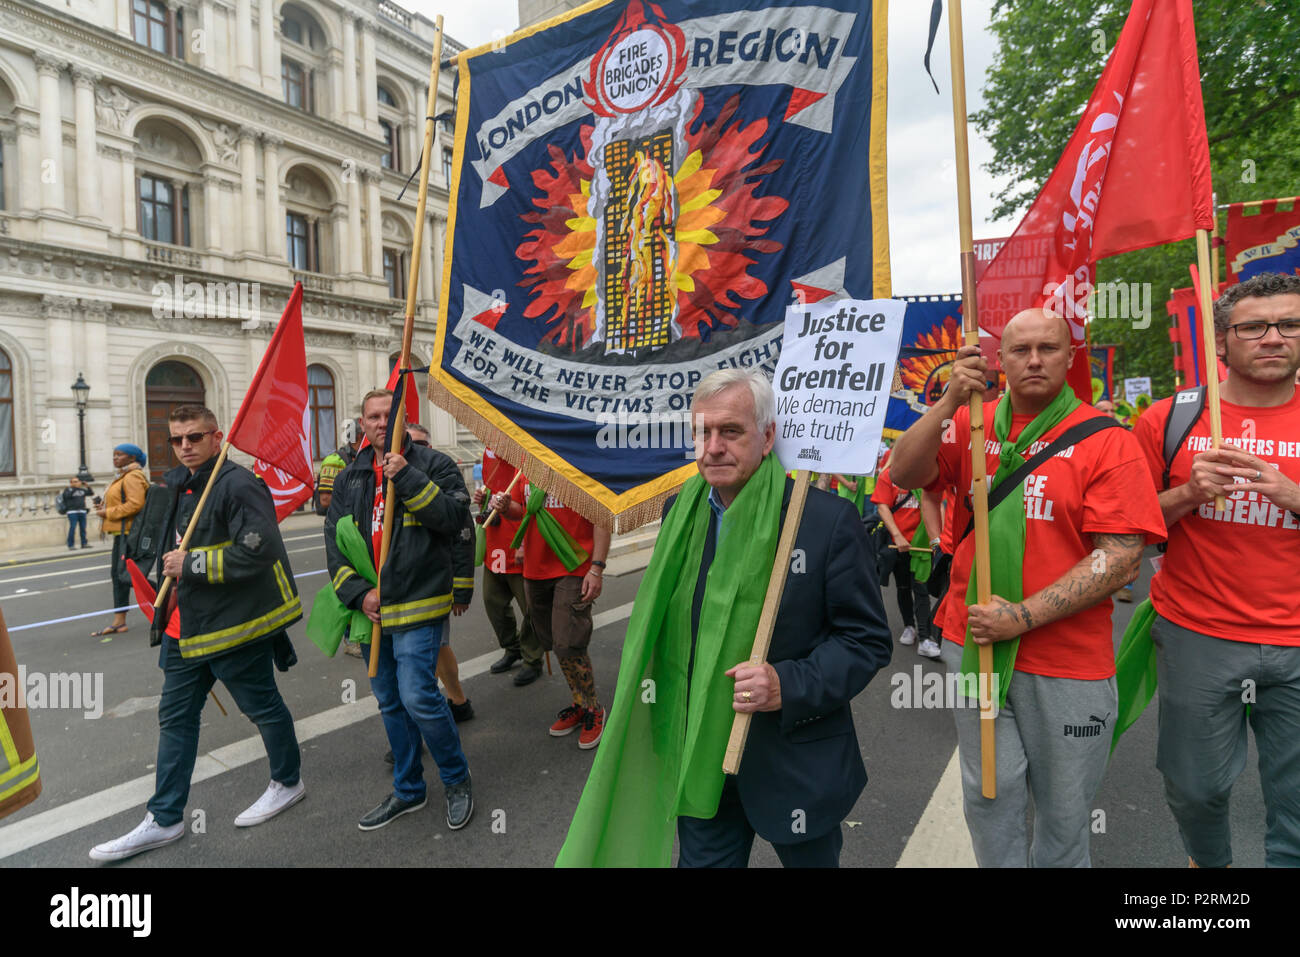 London, UK. 16th June 2018. Shadow Chancellor John McDonnell marches in the large crowd from Downing St to the Home Office in solidarity with the 72 killed and the survivors of the Grenfell fire a year ago at a protest organised by Justice4Grenfell and the FBU (Fire Brigades Union.) After some speeches they marched to the Home Office for a brief protest before returning to Downing St for more speeches. Speakers complained of the many promises made by Theresa May which have been broken, despite her promise all survivors would be rehoused in 3 weeks, a year later 50% of survivors and displaced f - Stock Image